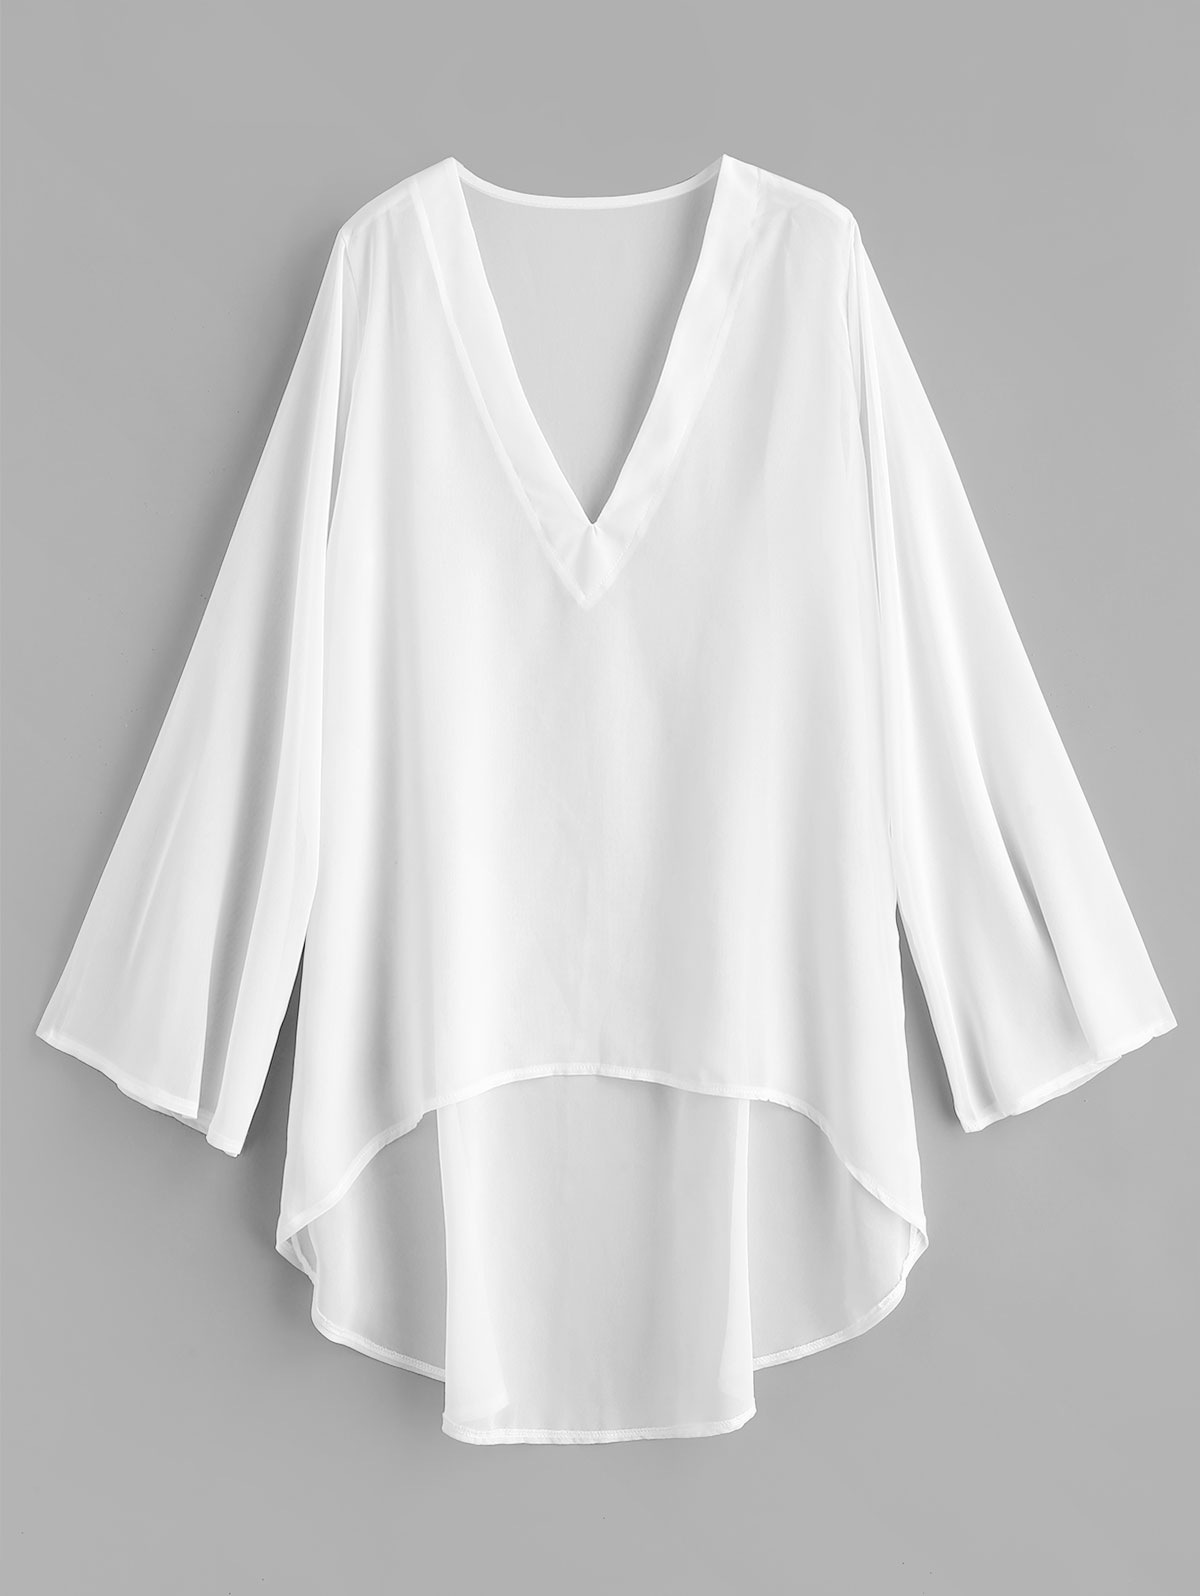 Chiffon High Low Beach Cover Up Dress